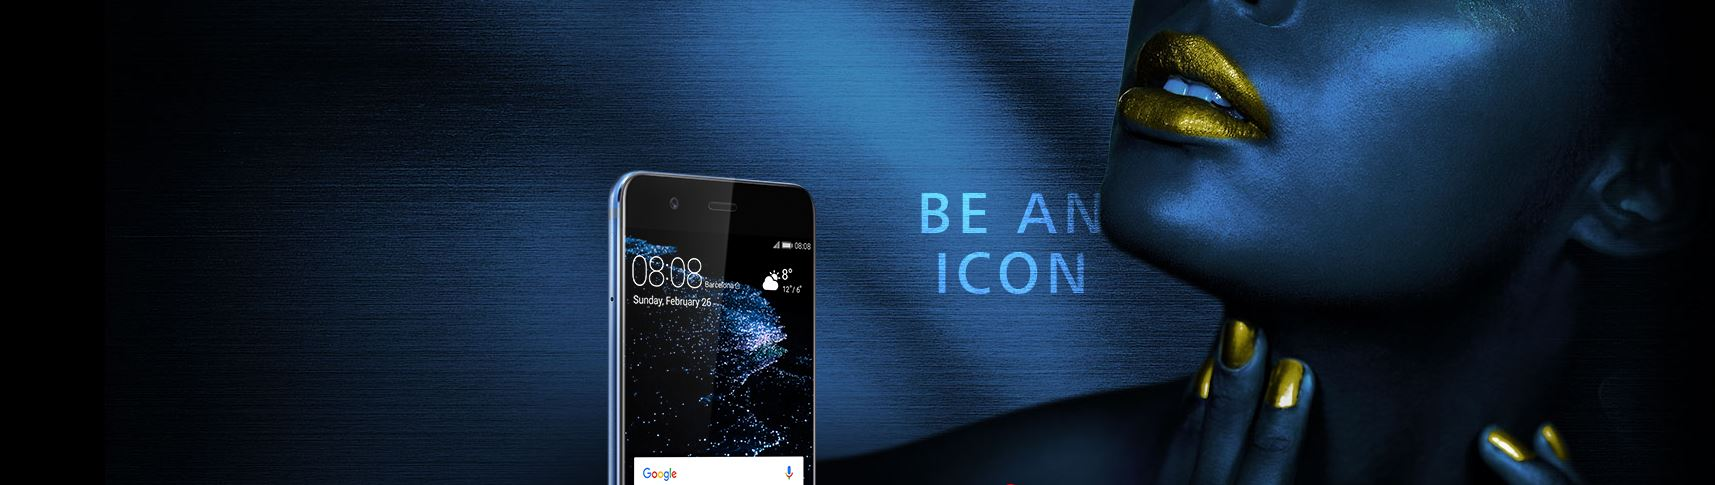 Capture Huawei Confirms P10 And P10 Plus Pricing Ahead Of Oz Launch